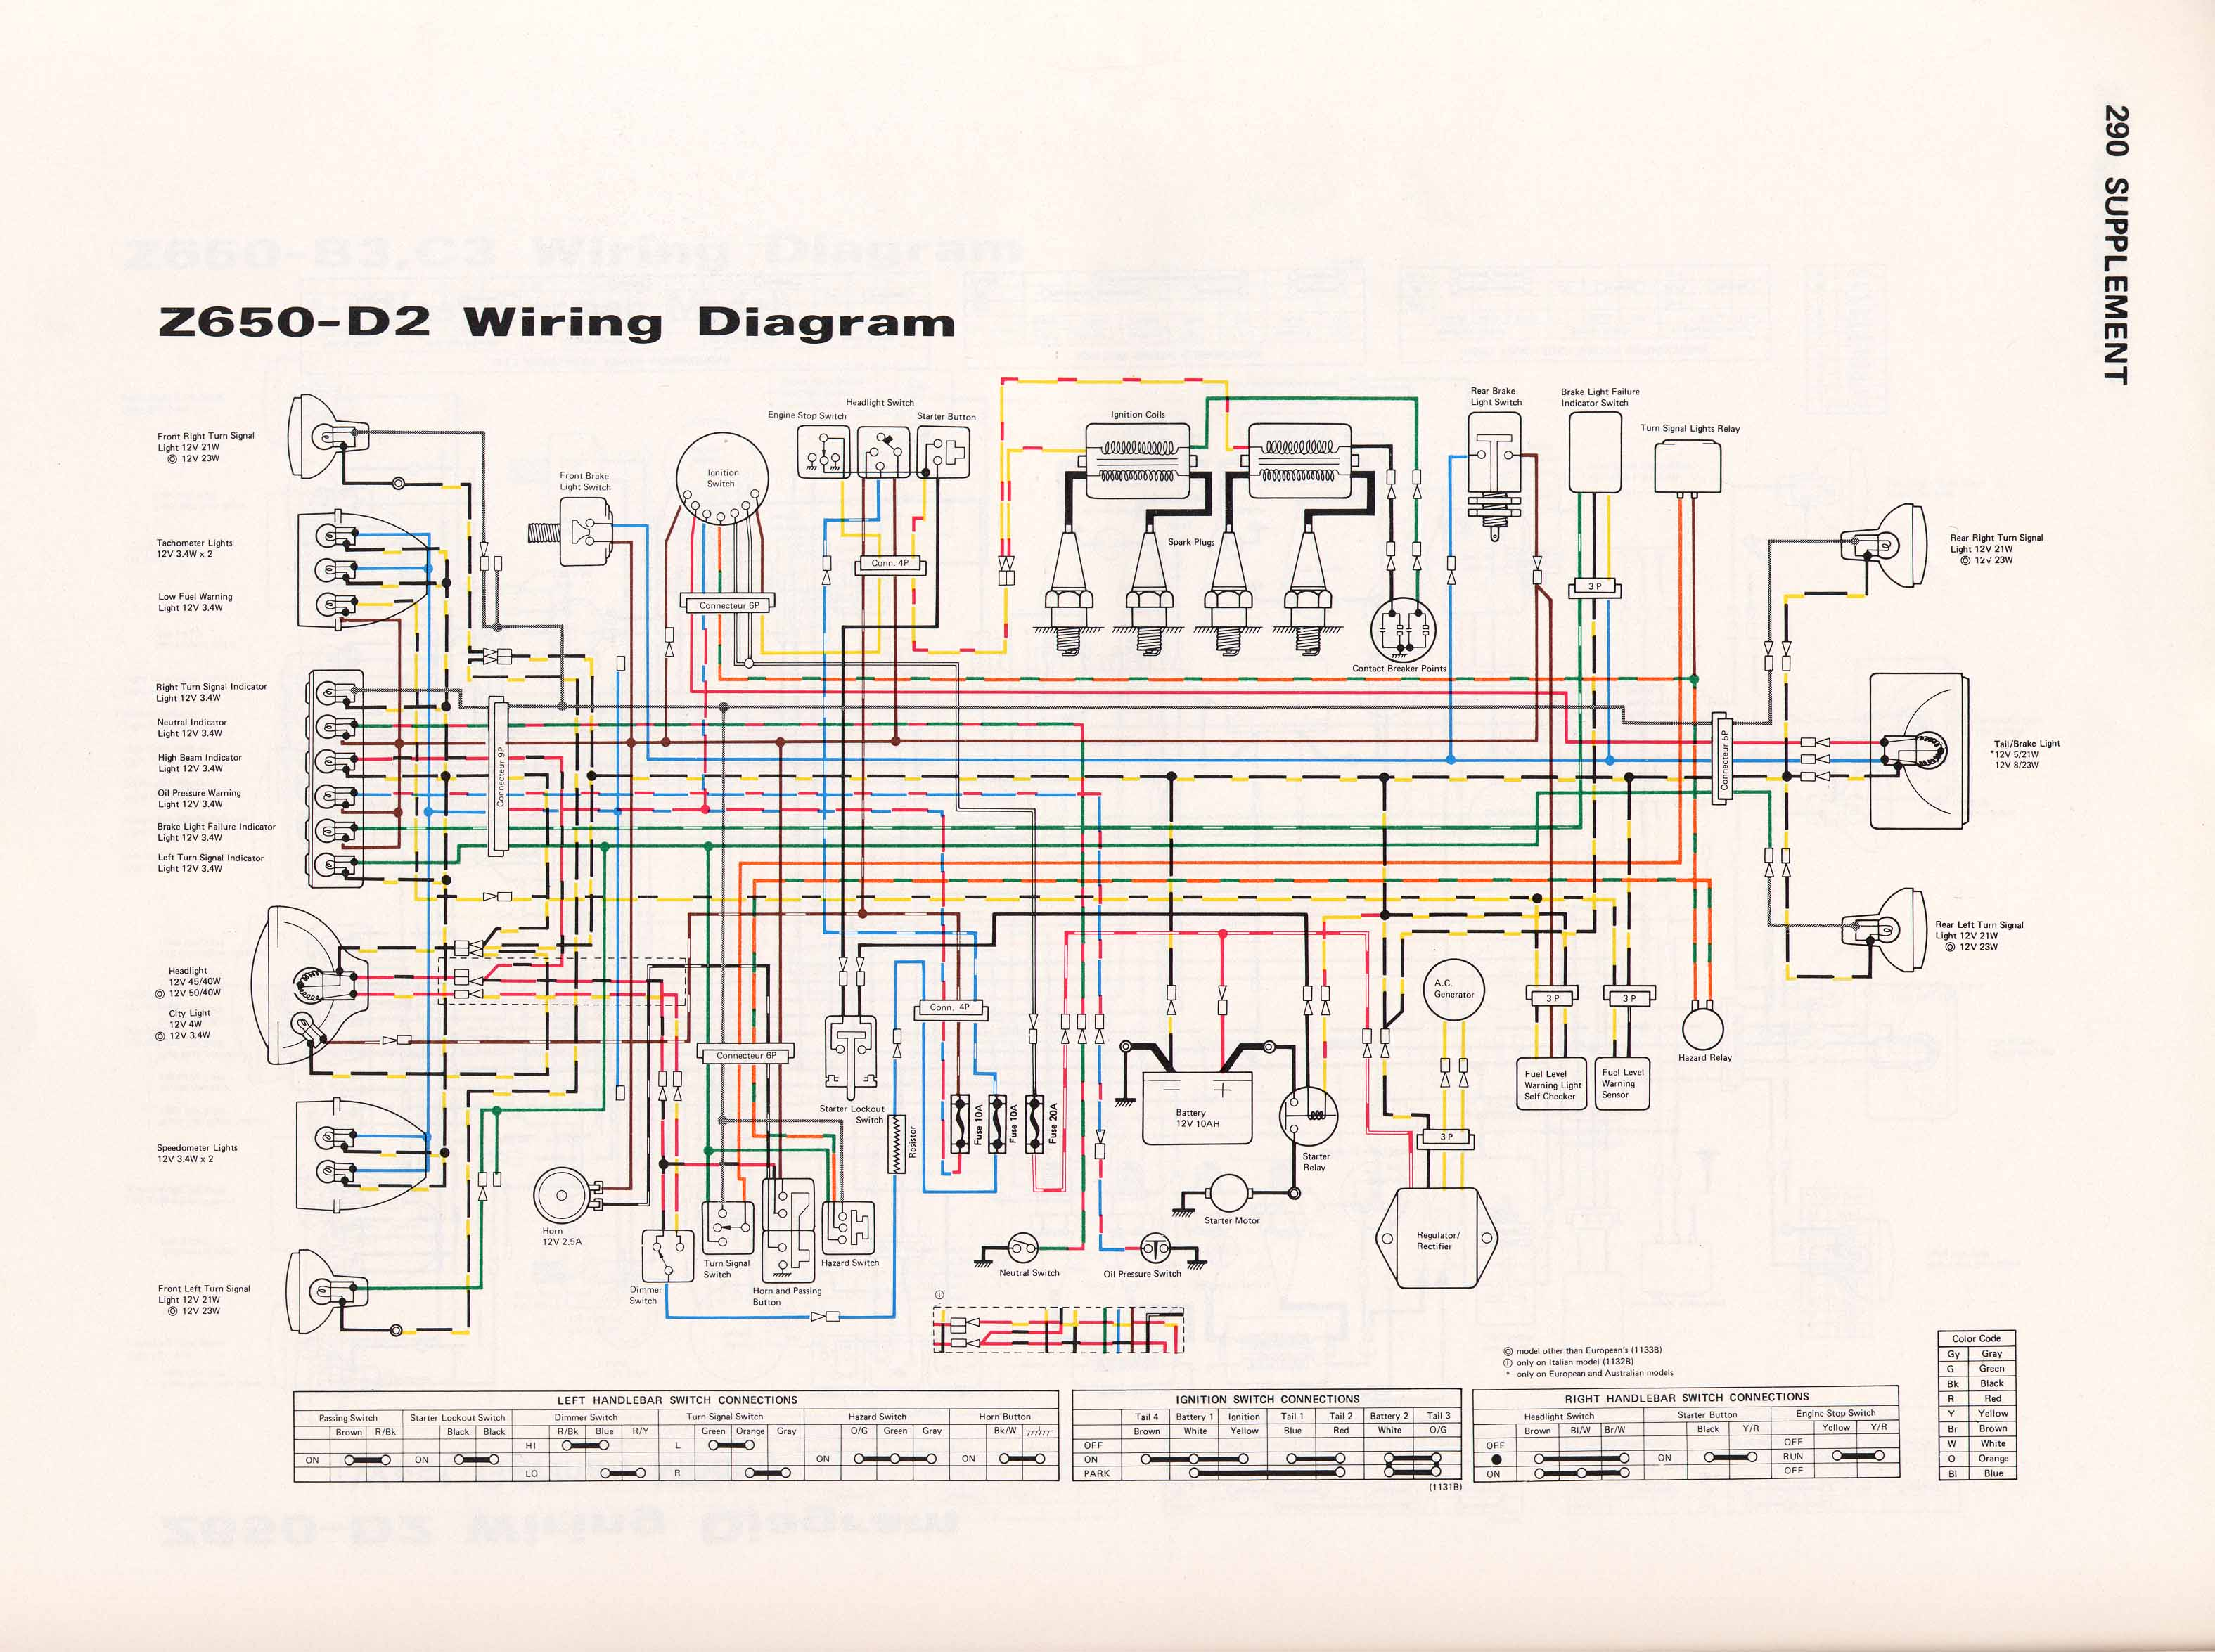 Z650 D2 kz650 info wiring diagrams 1978 kawasaki kz650 wiring harness at alyssarenee.co